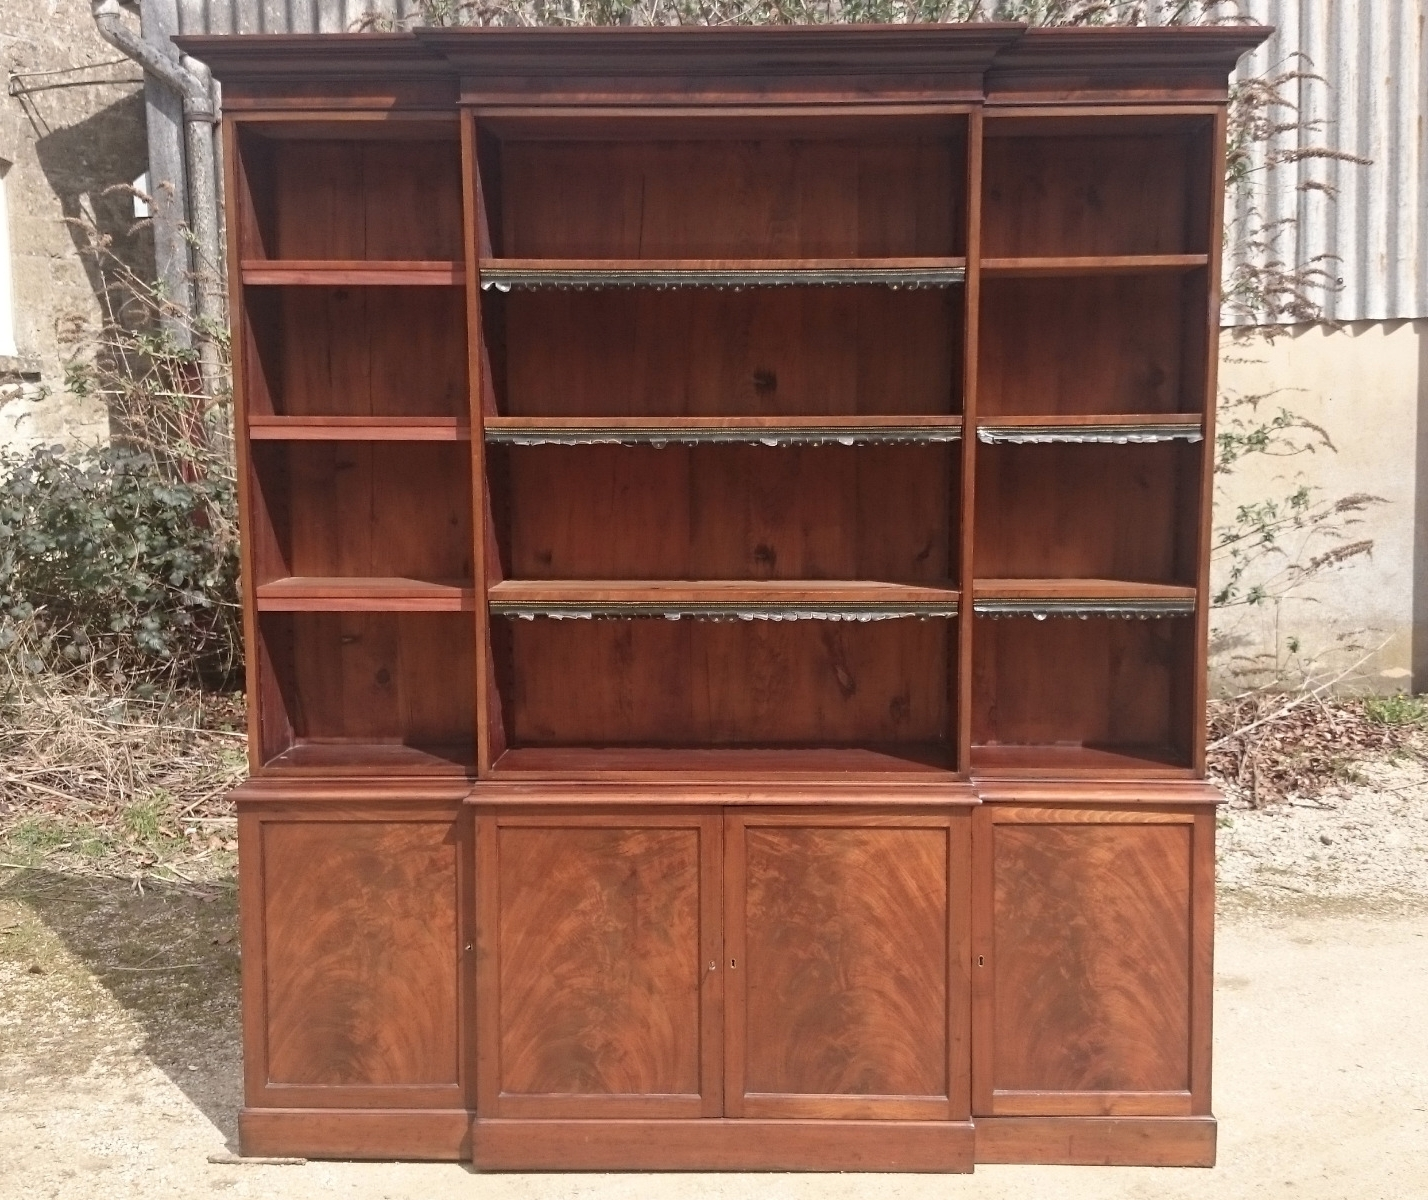 Breakfront Bookcases – Hares Antiques In Well Known Breakfront Bookcases (View 1 of 15)